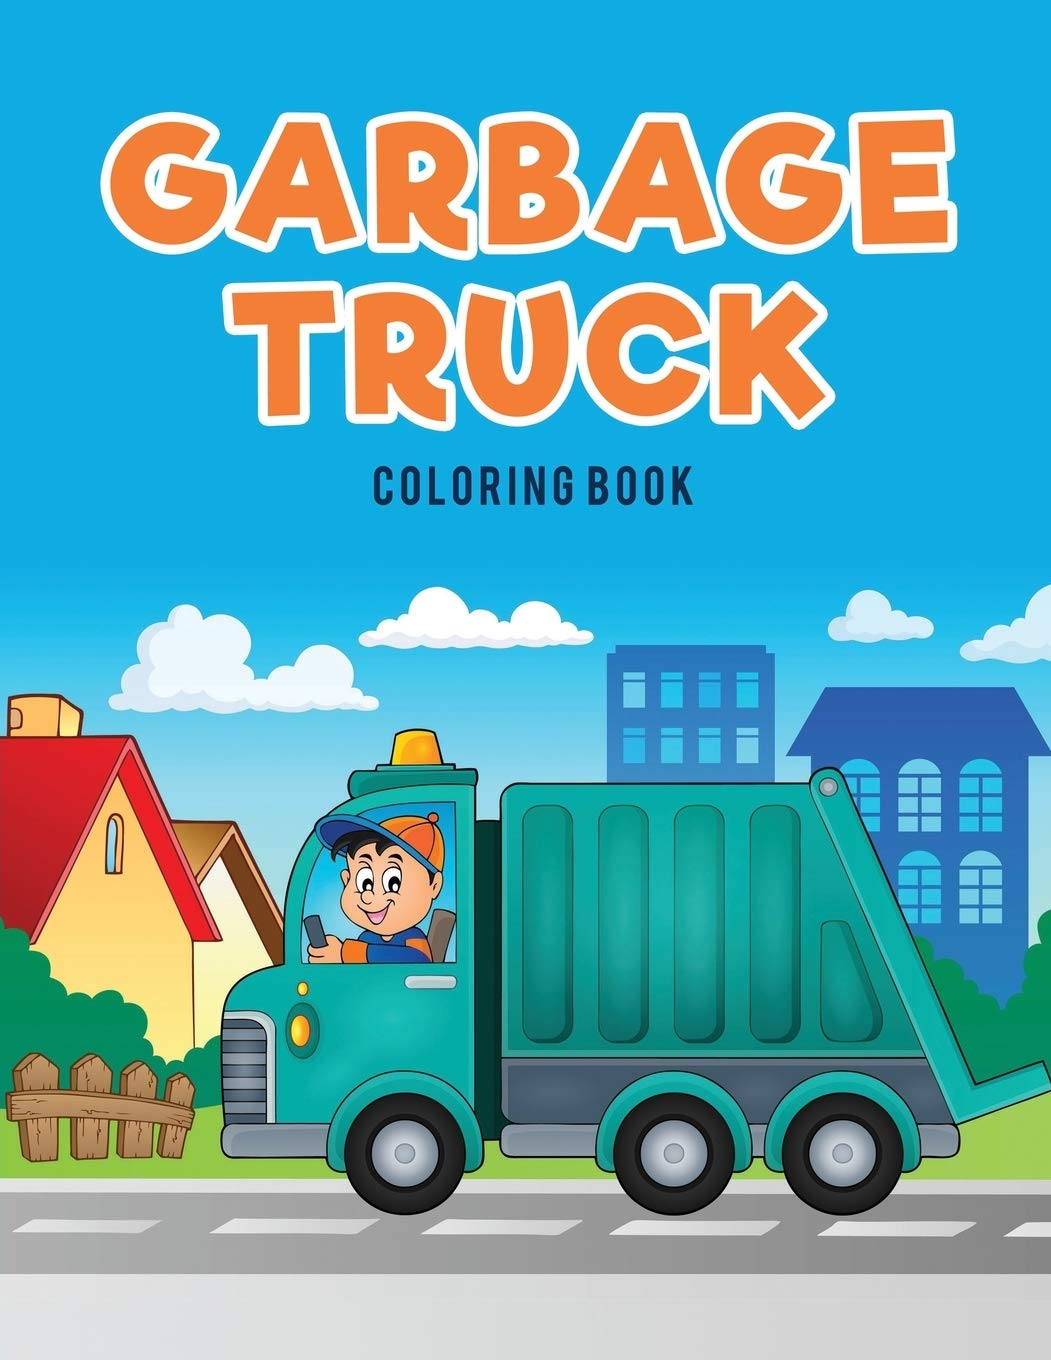 Garbage Truck Coloring Book For Kids Coloring Pages 9781635894998 Amazon Com Books